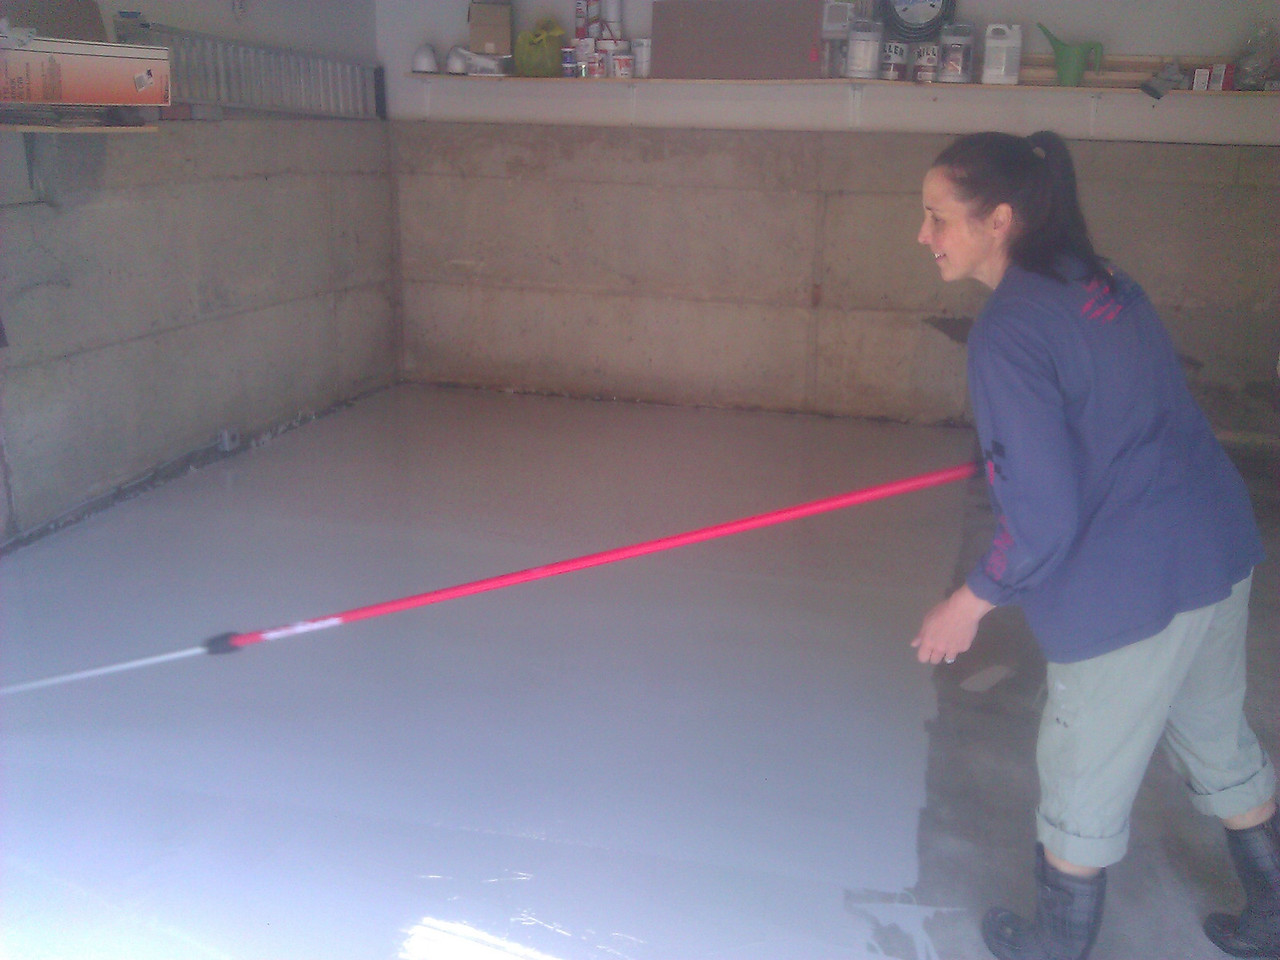 My wonderful wife helping put our new garage floor down.  She was showing the mad skillz.